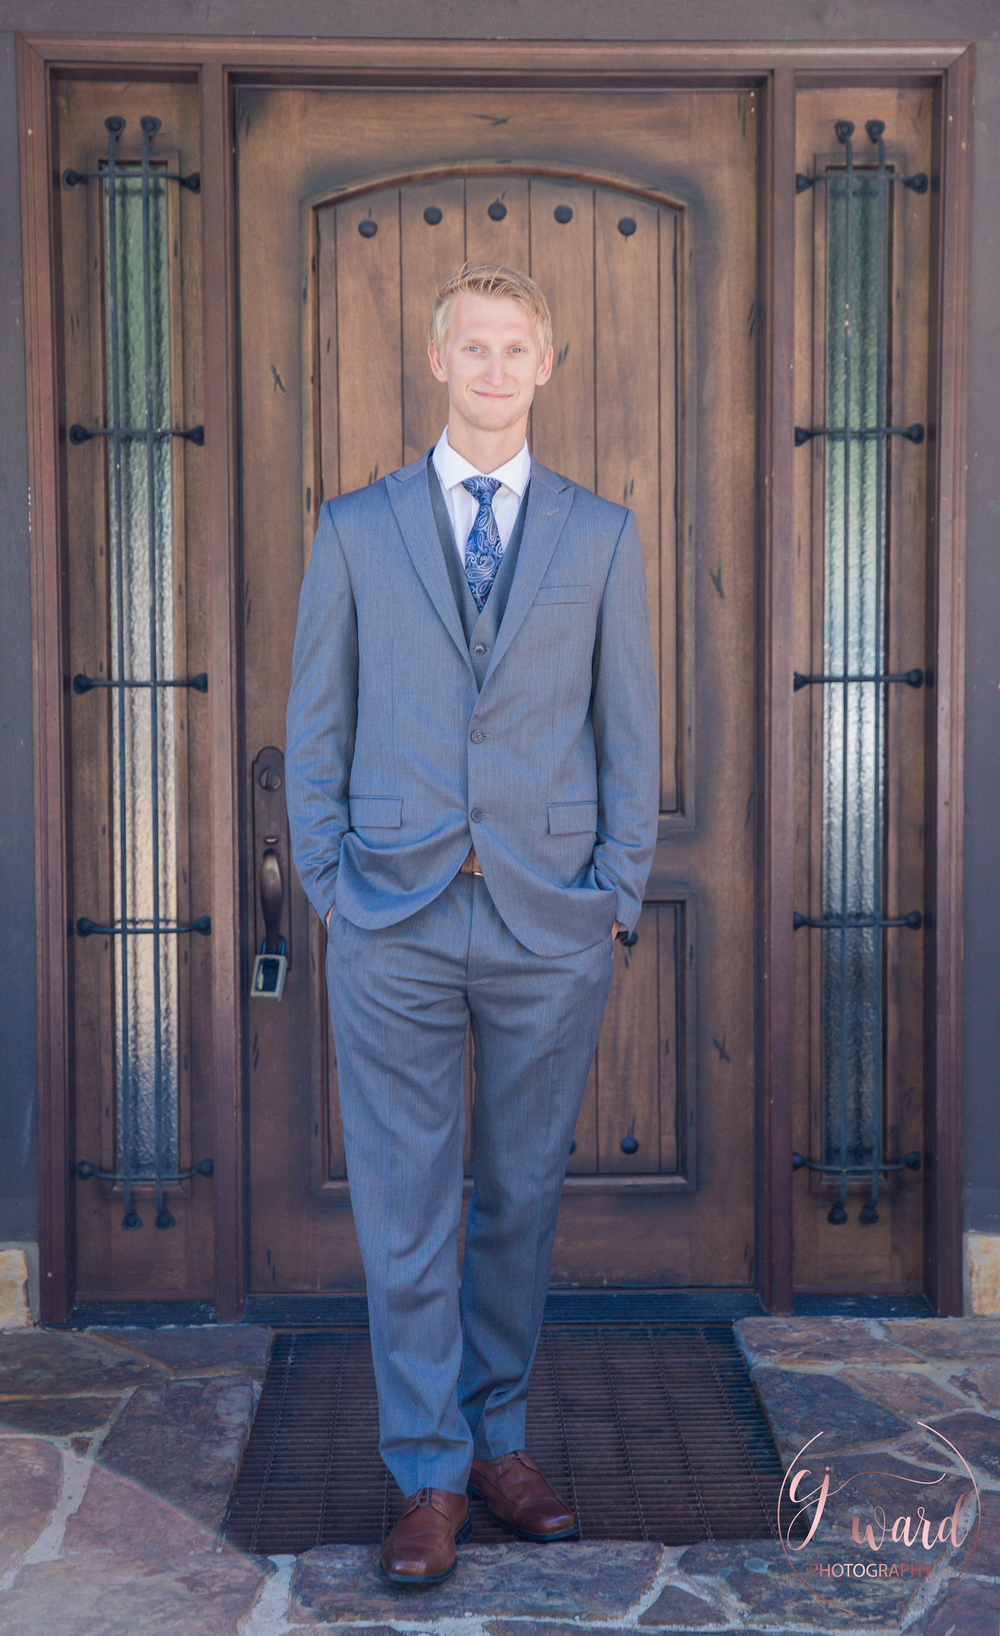 Boise-Wedding-Photographer-Mountain-Wedding-CJ-Ward-Photography-12.png